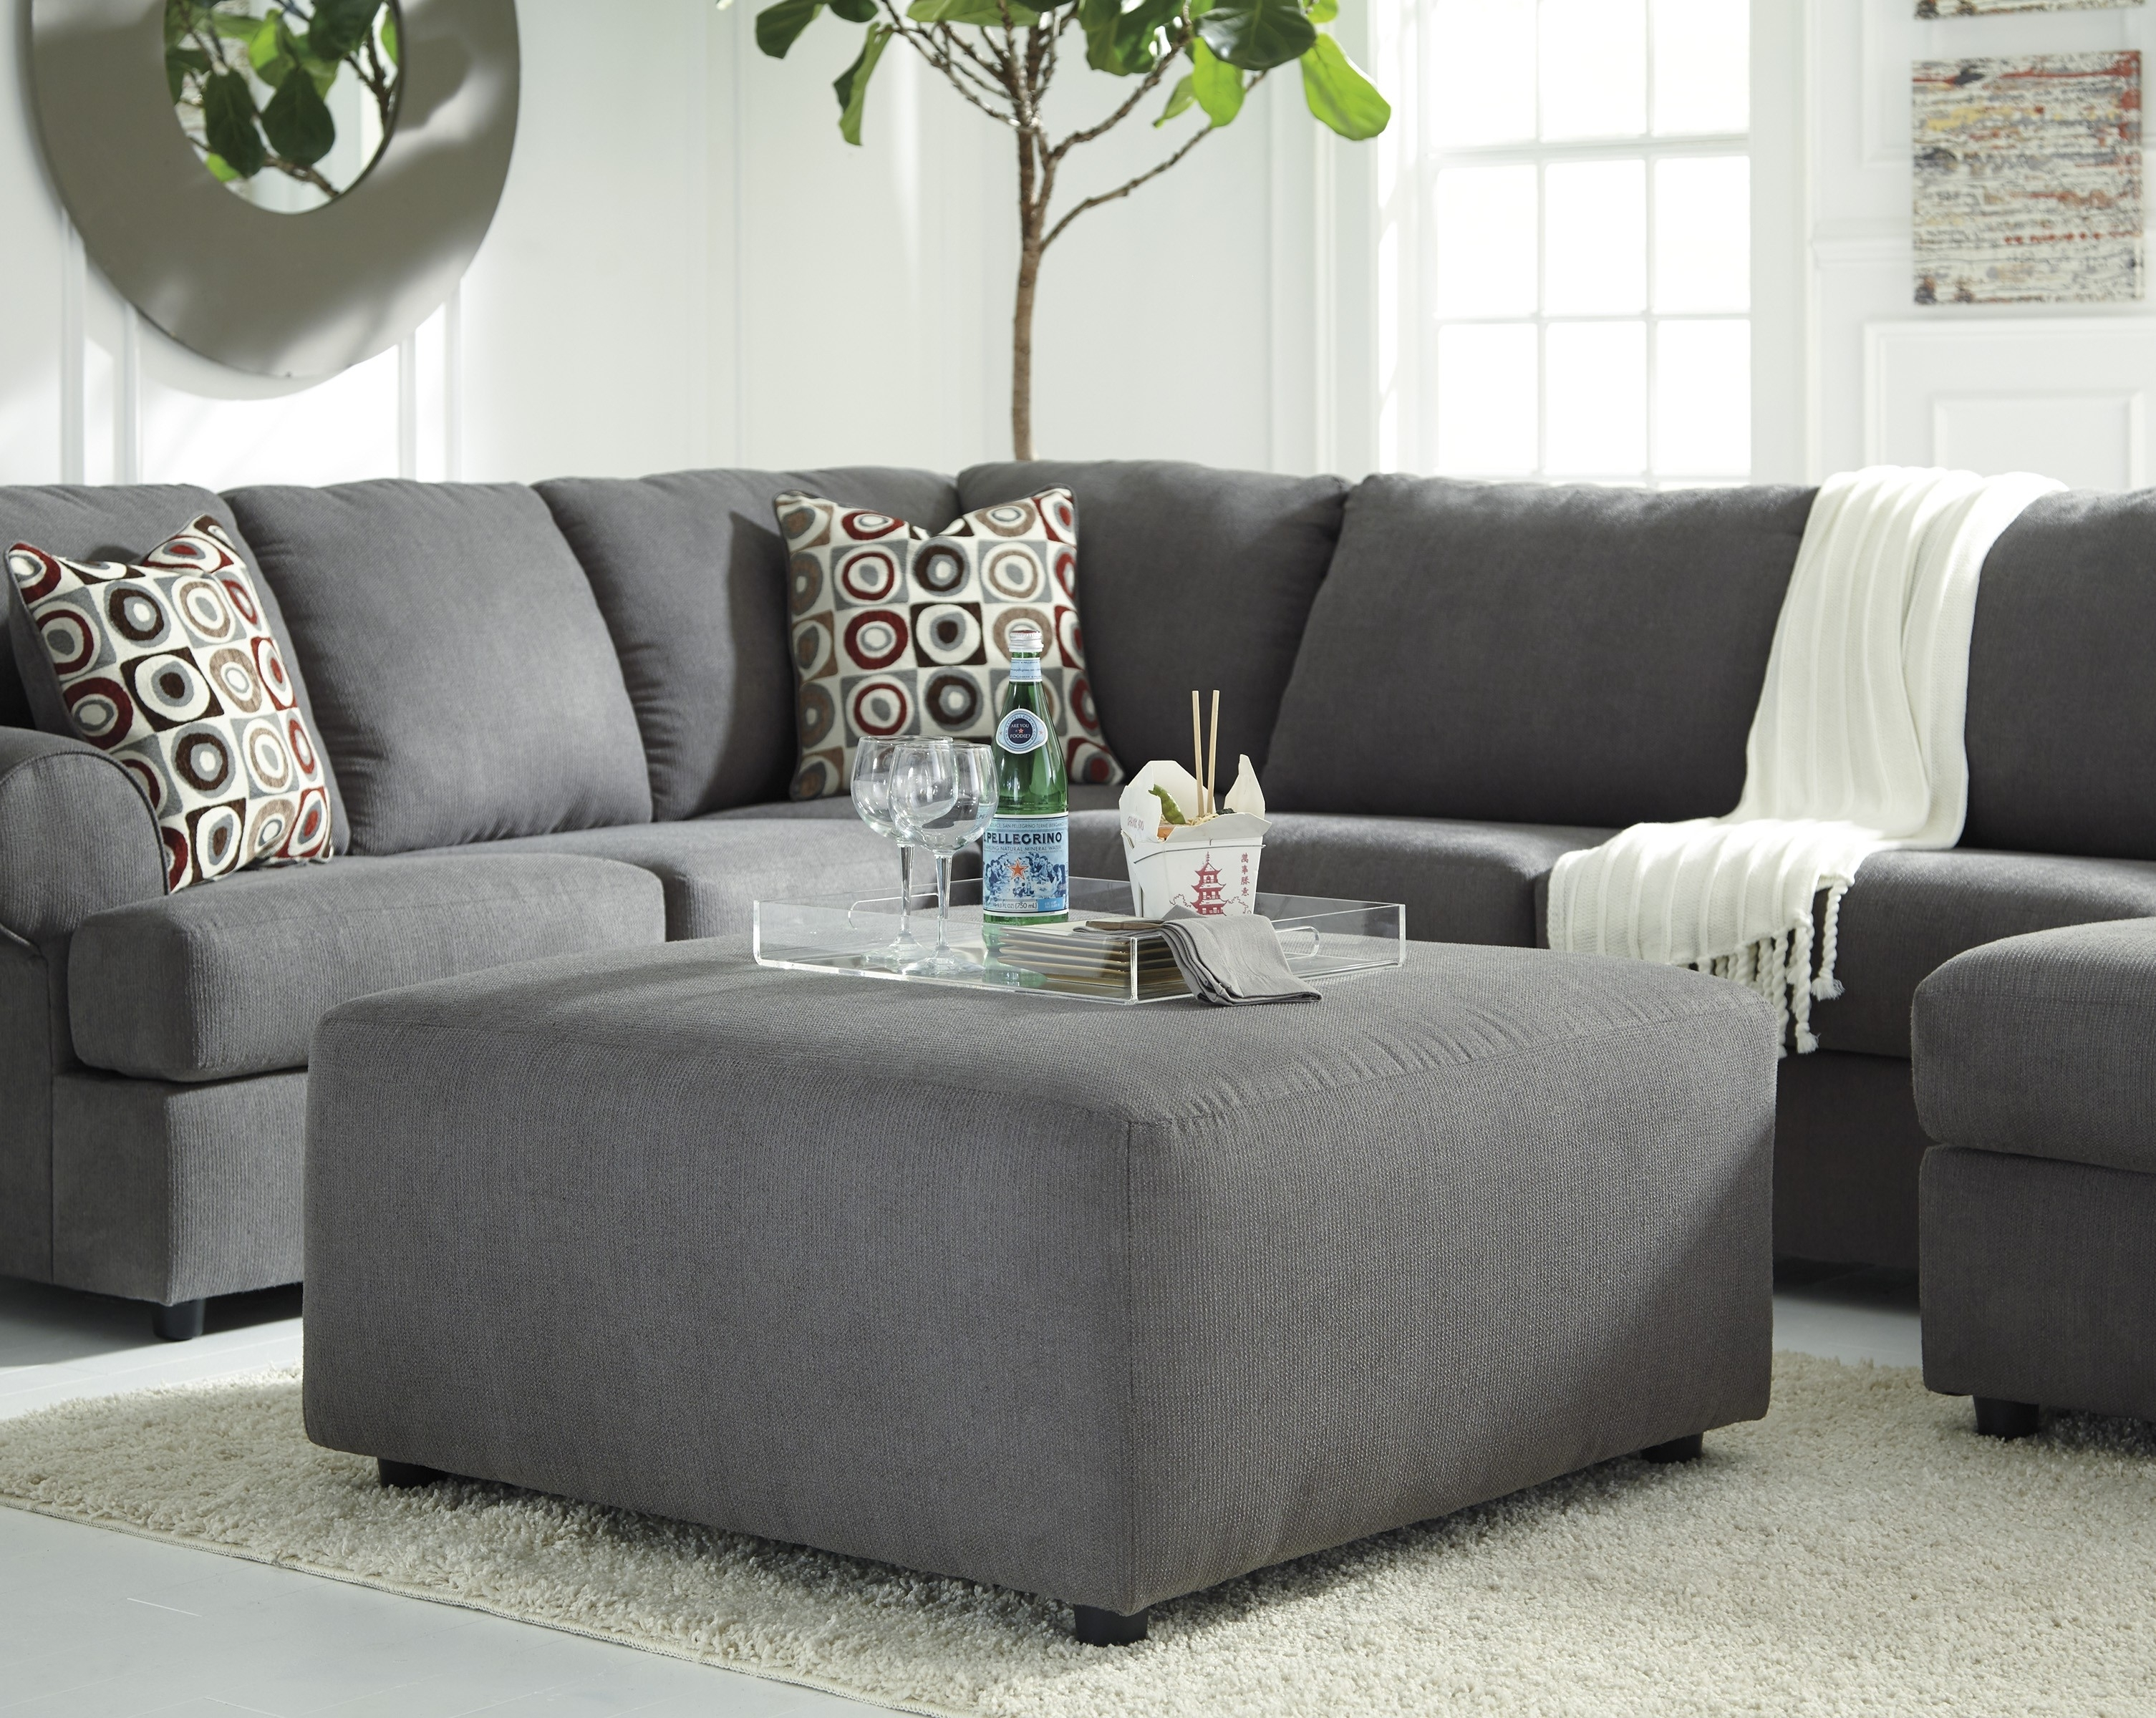 Jayceon Steel 3Pc Laf Sofa Sectional | Catosfera Throughout Malbry Point 3 Piece Sectionals With Laf Chaise (View 21 of 25)